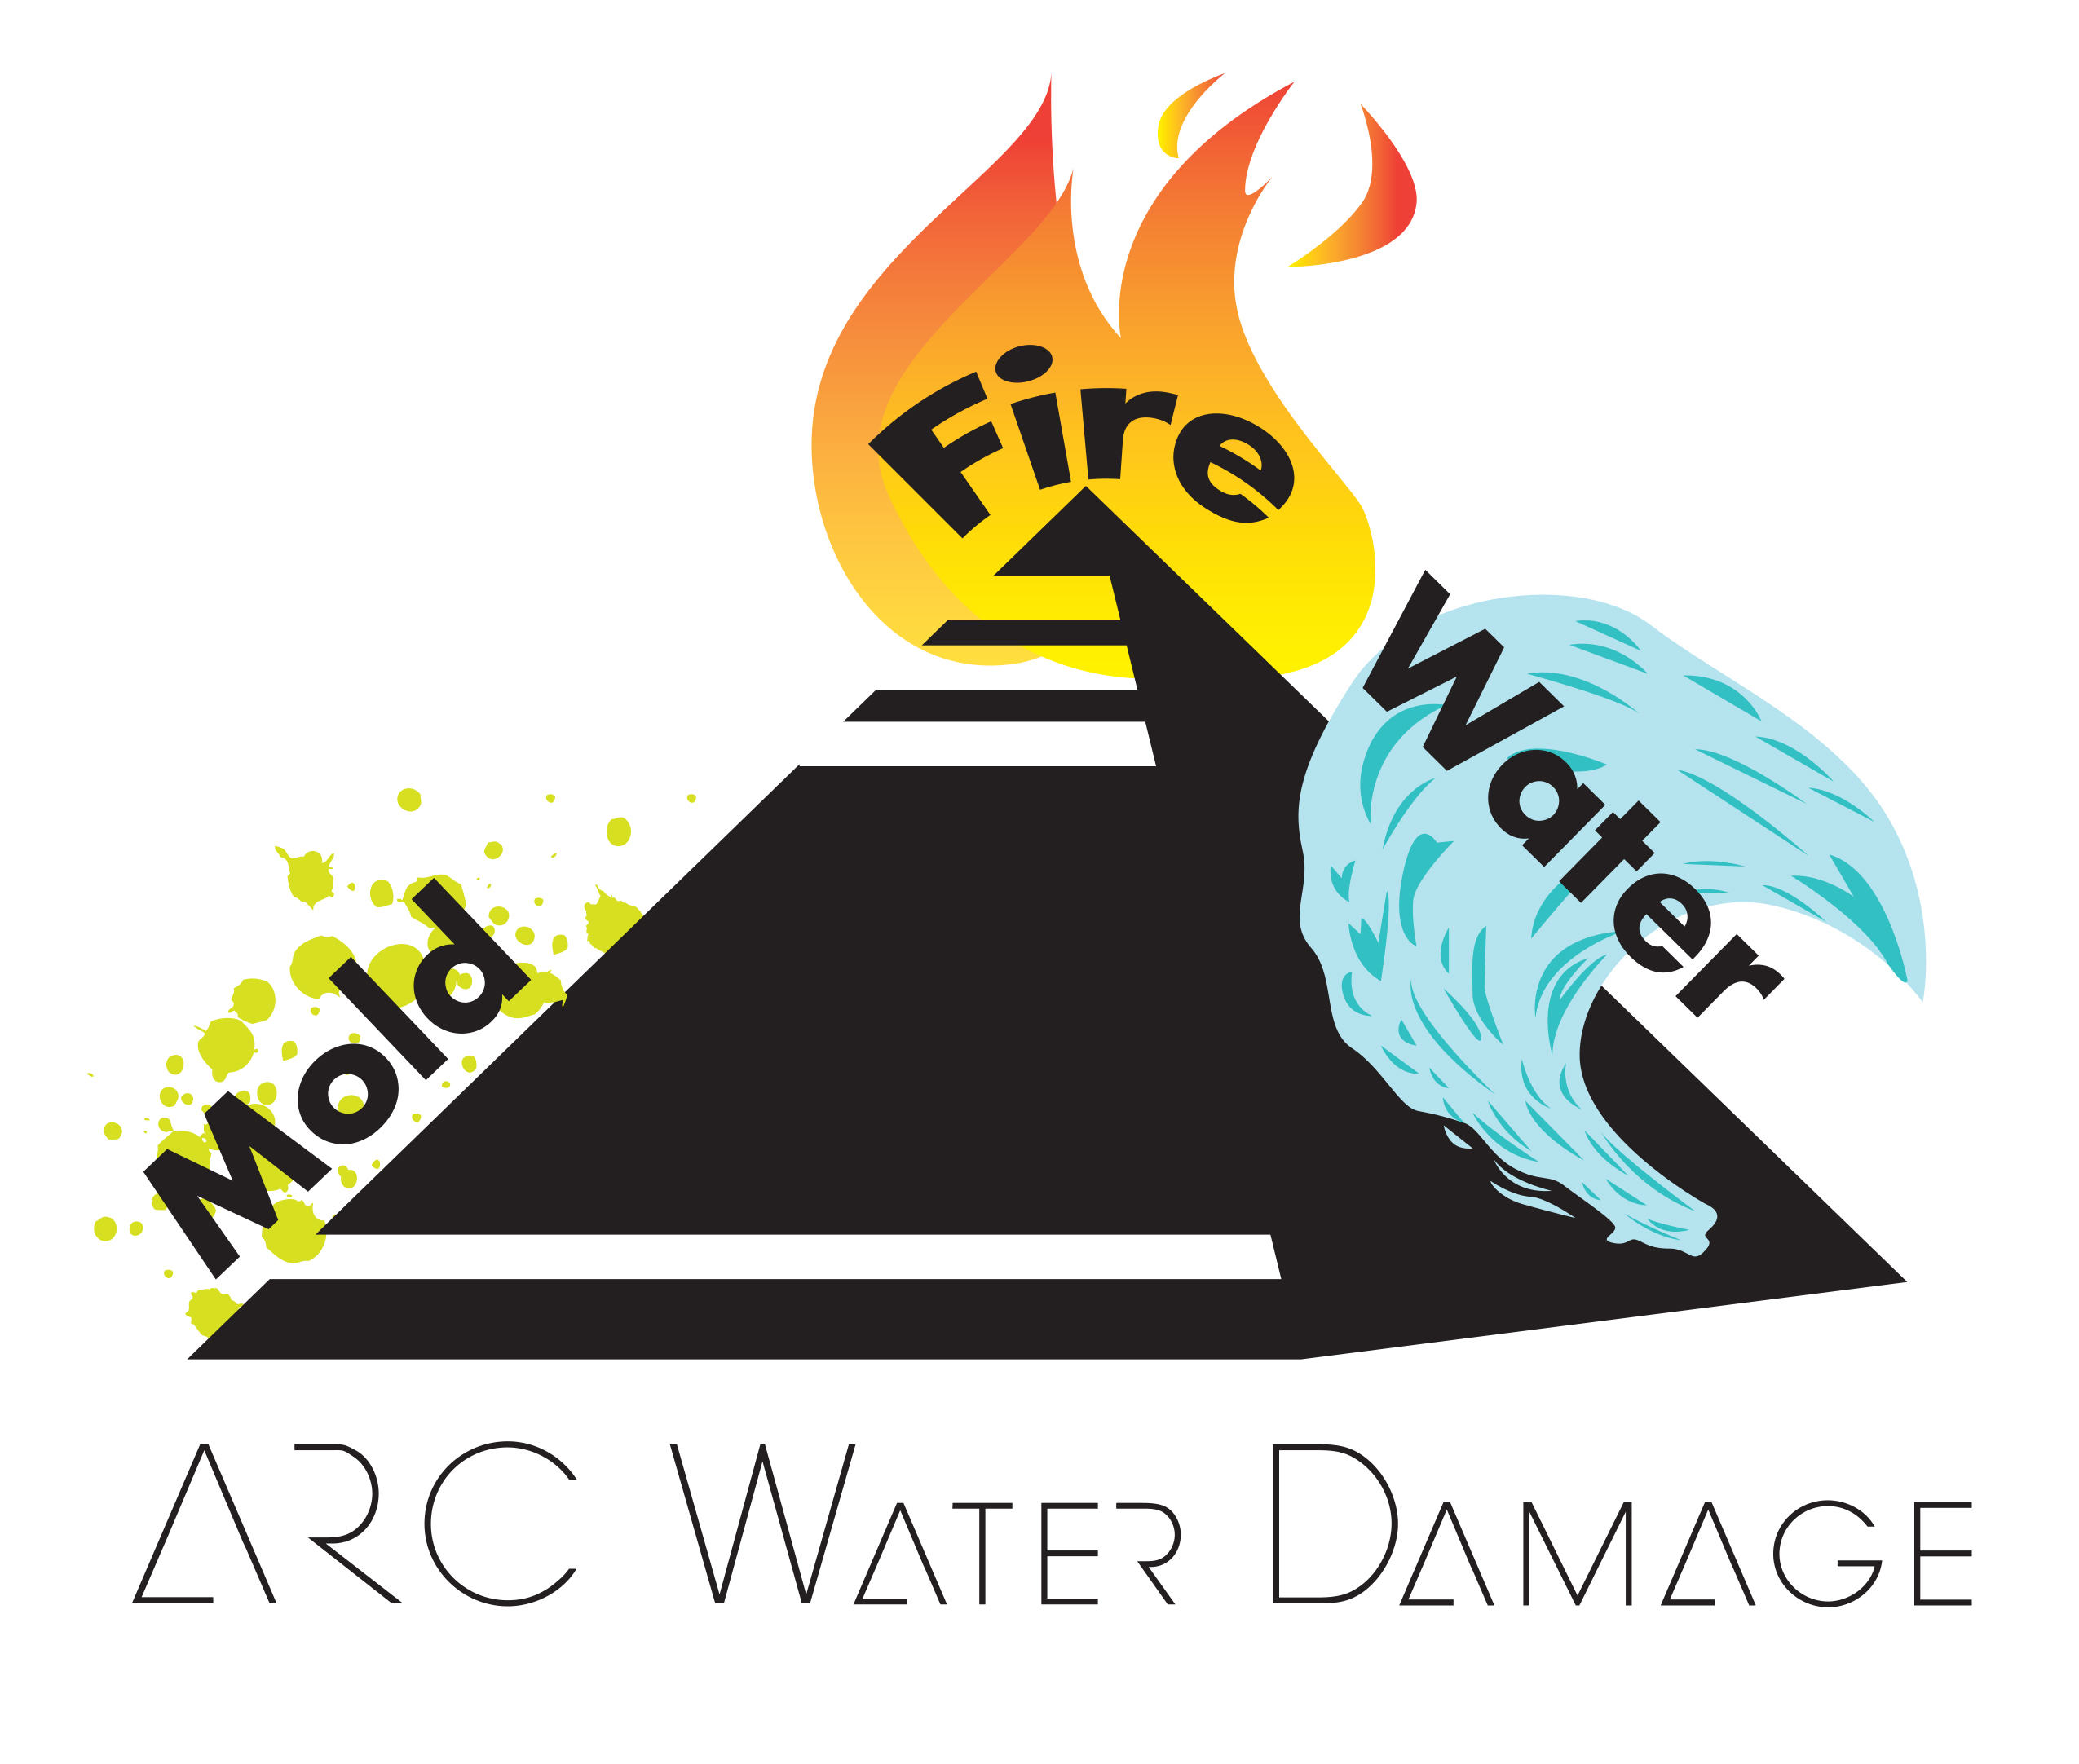 ARC Water Damage logo